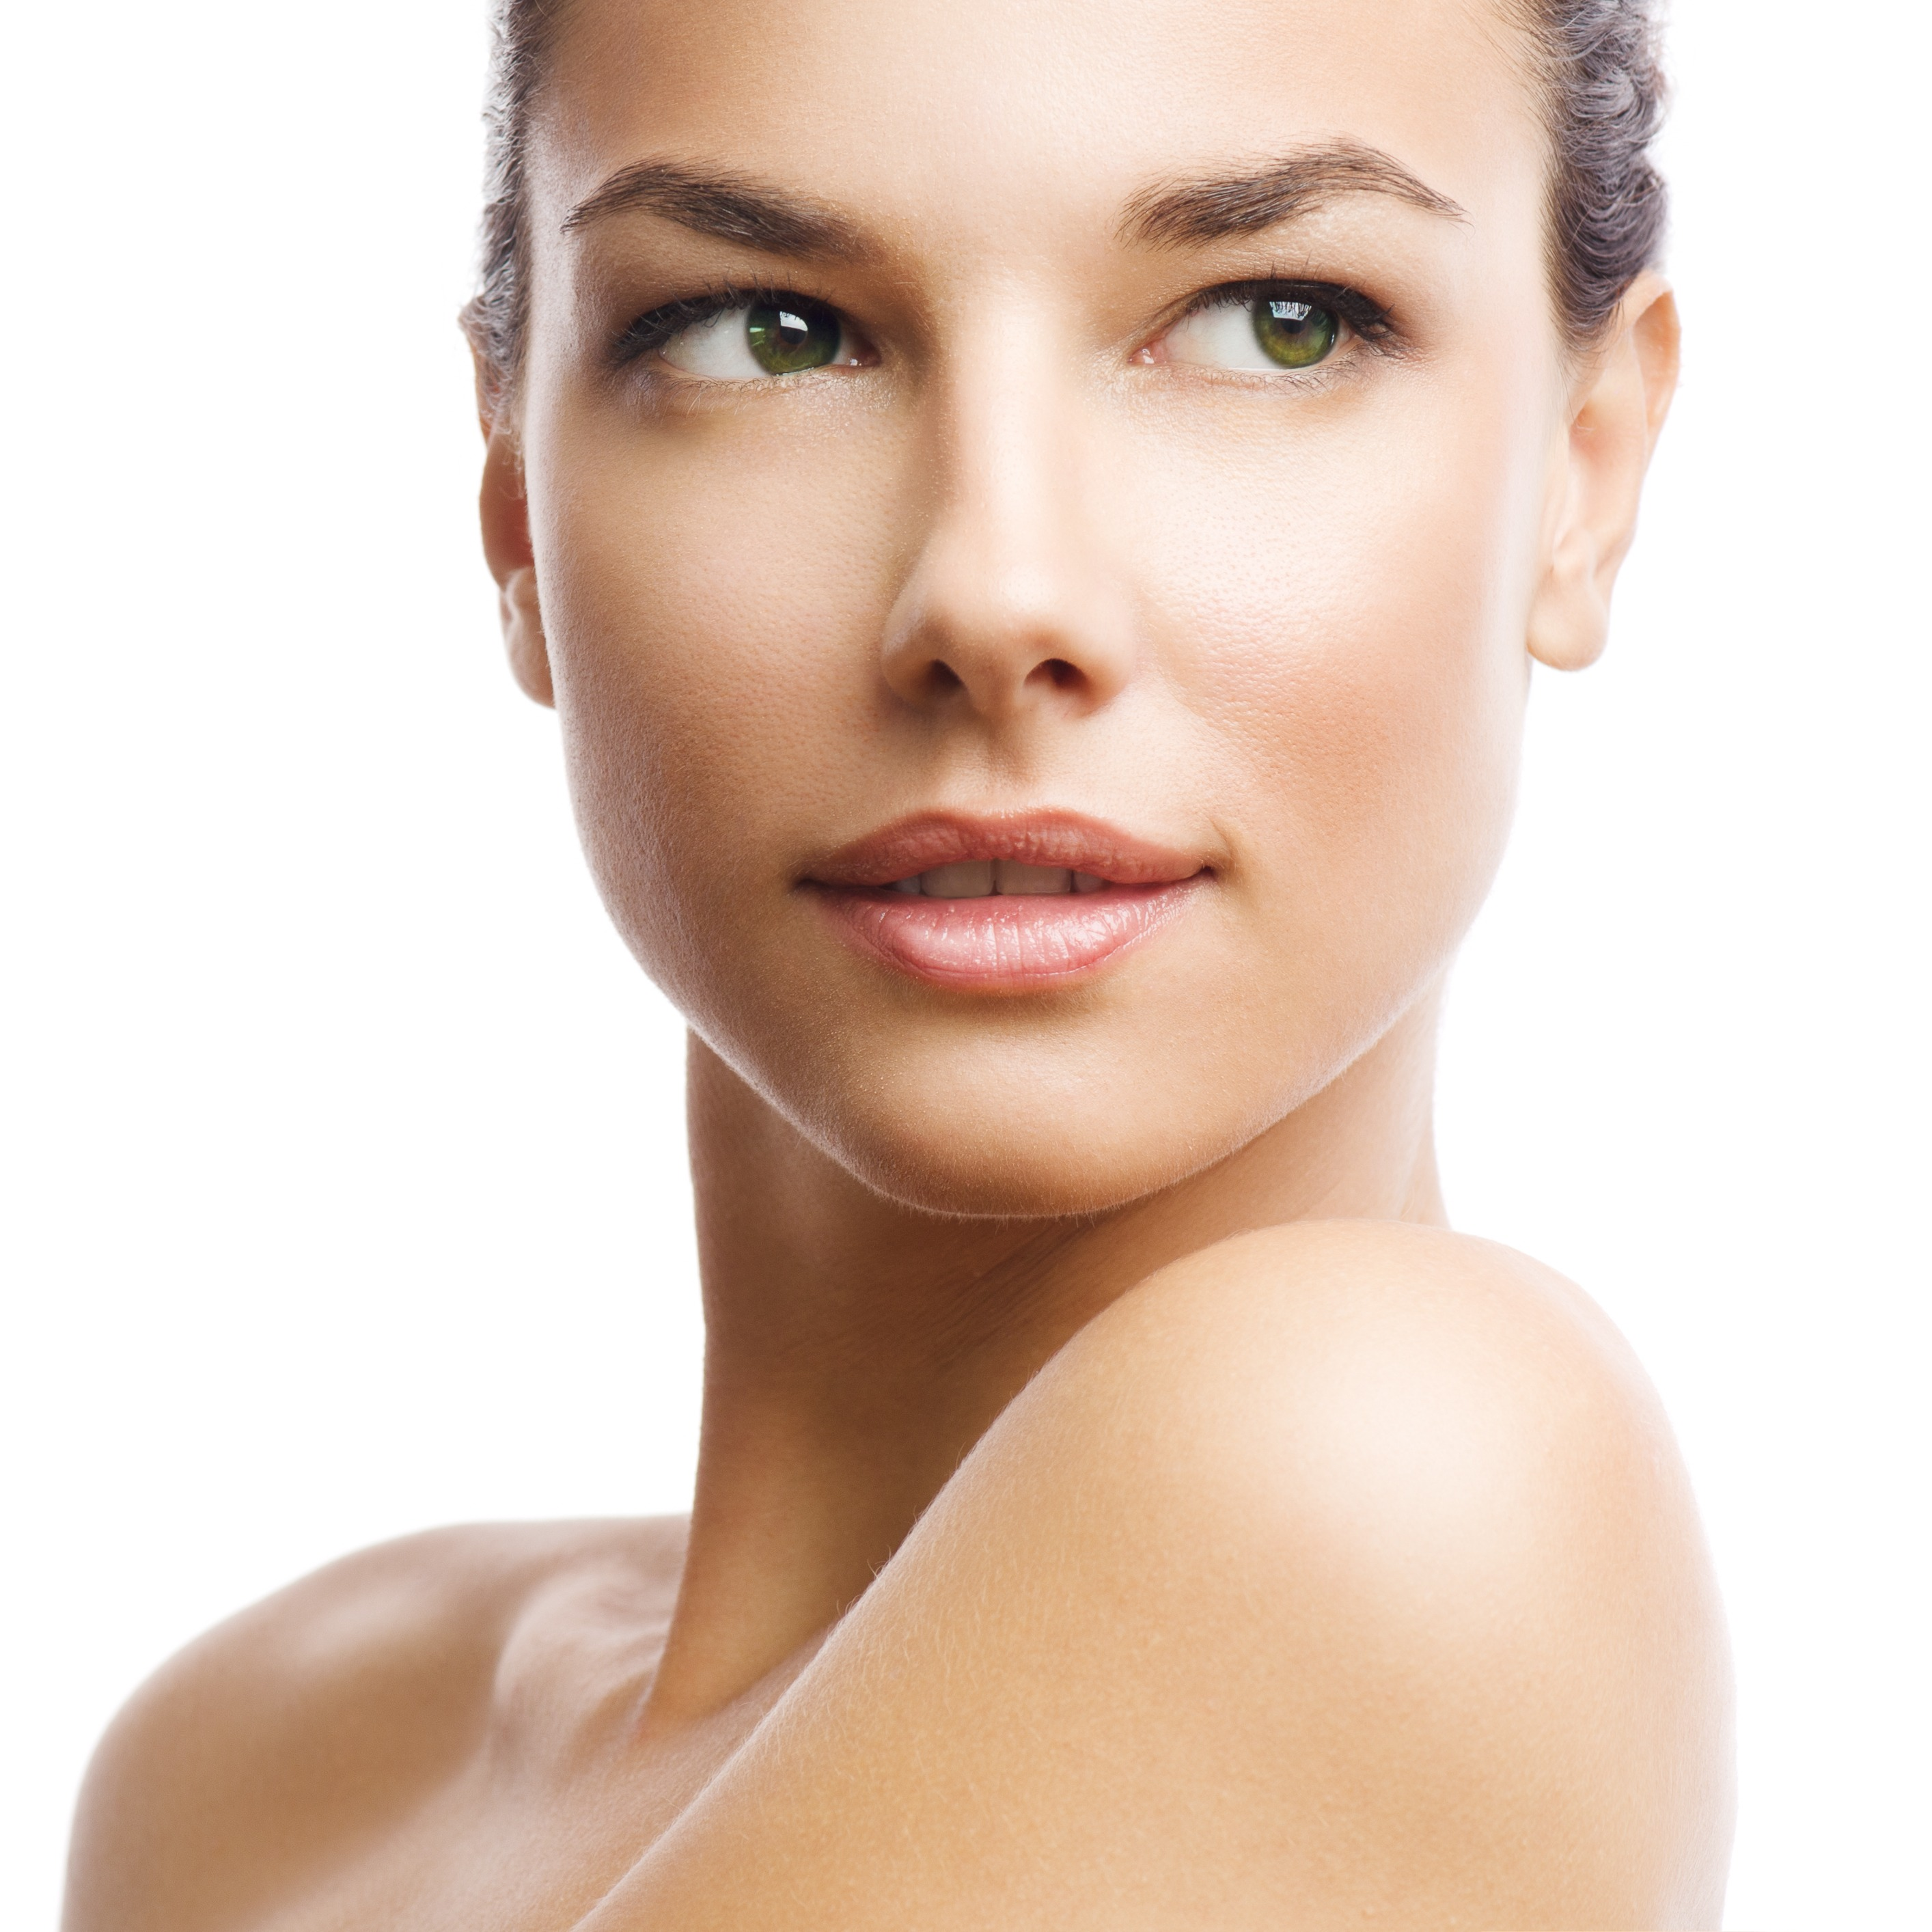 California cosmetic facial surgery